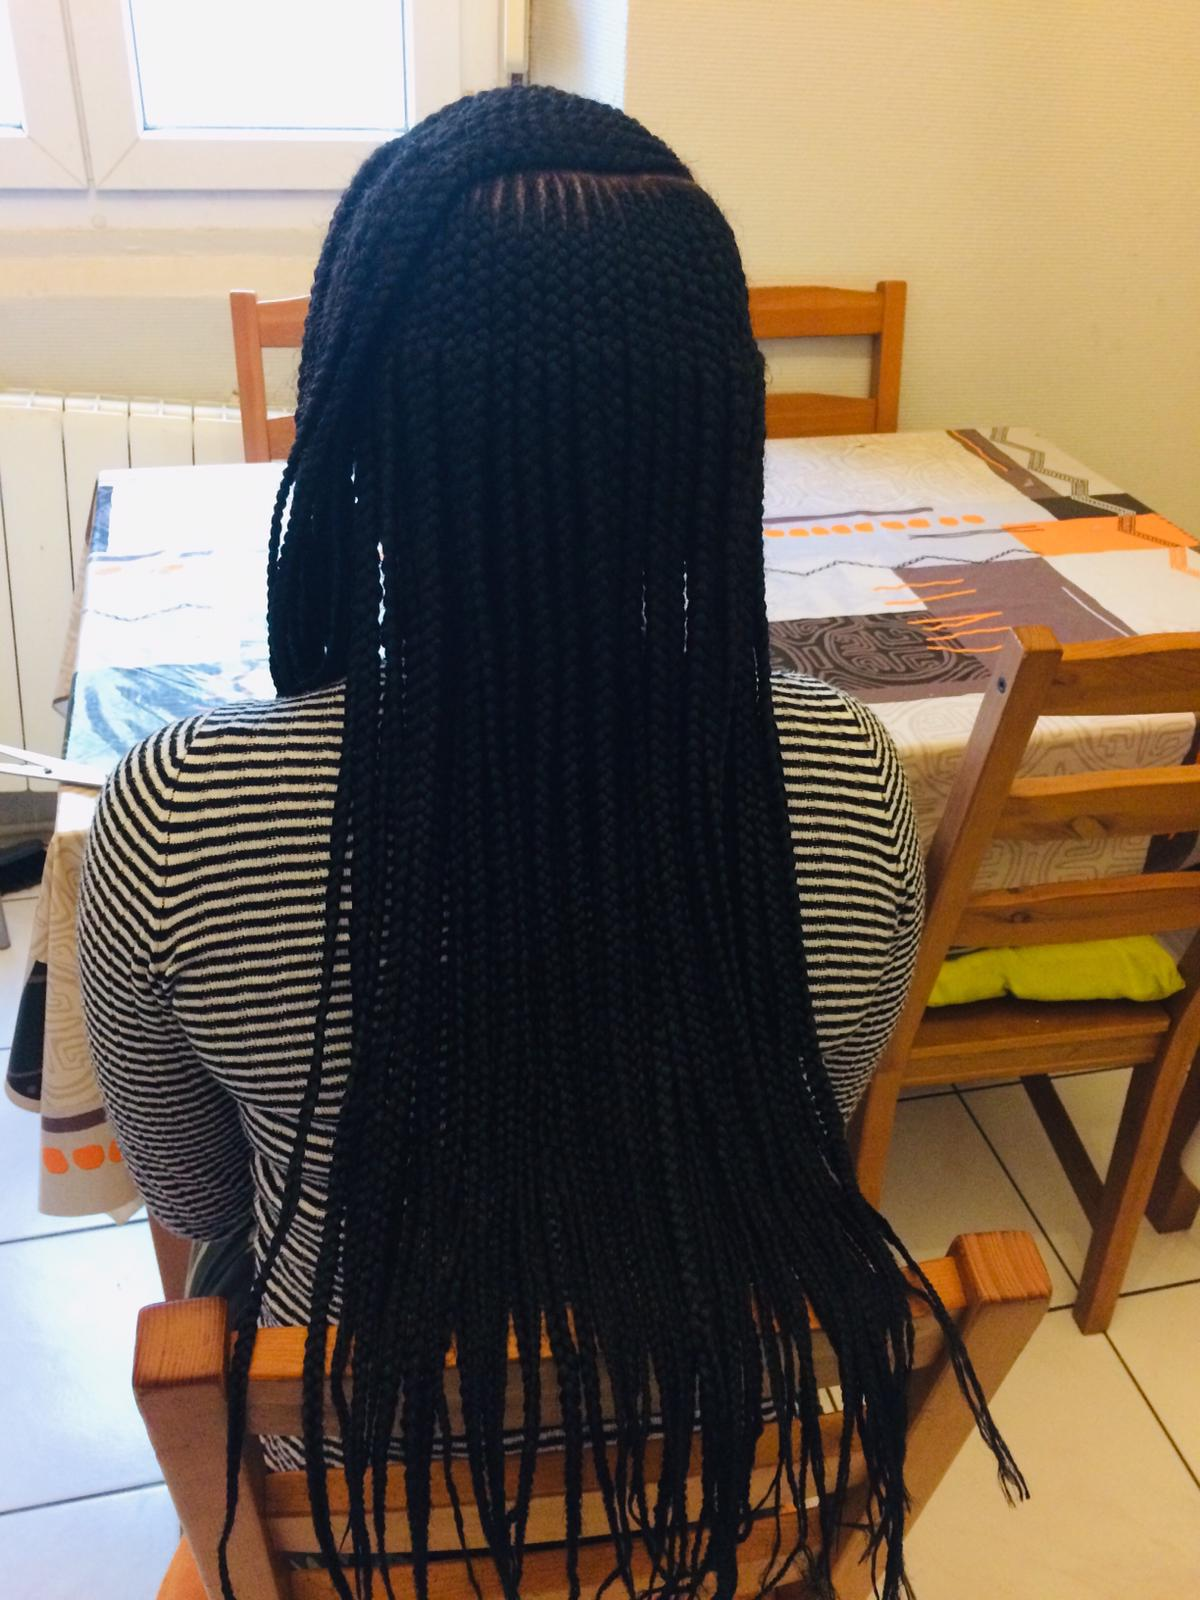 salon de coiffure afro tresse tresses box braids crochet braids vanilles tissages paris 75 77 78 91 92 93 94 95 ZRQNOESK